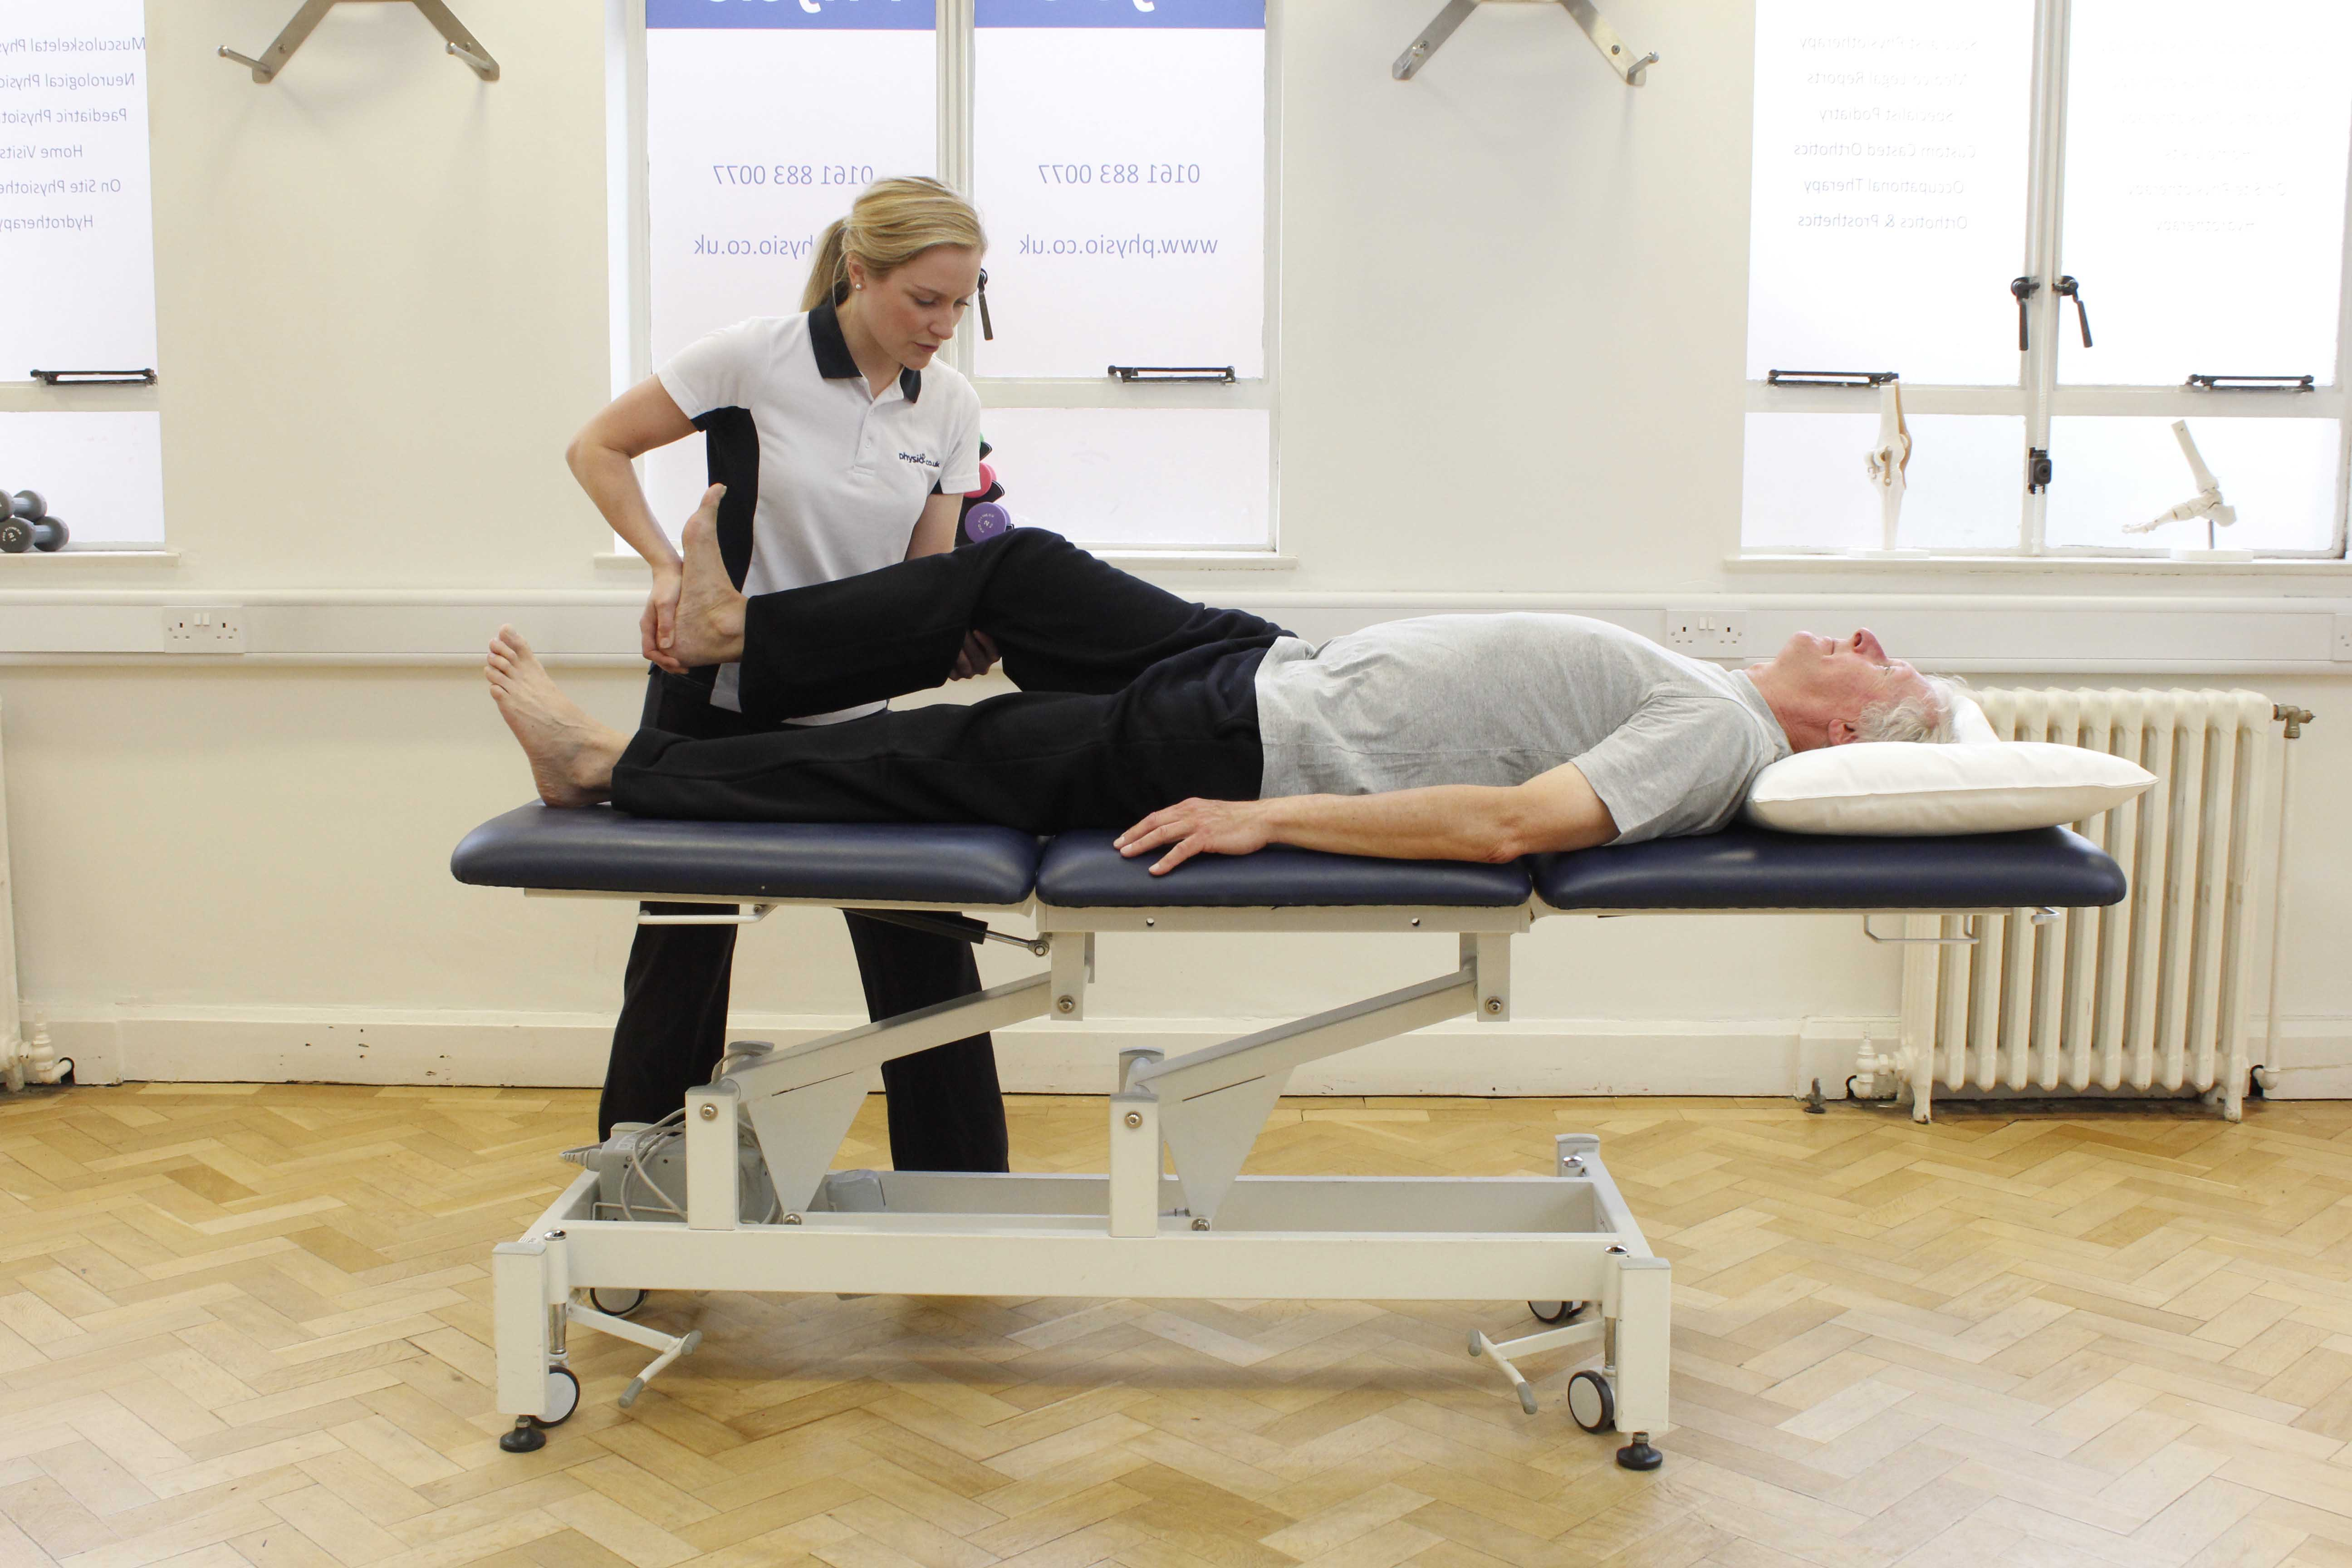 Moblisations and stretches of the hip, knee and ankle by an experienced physiotherapist